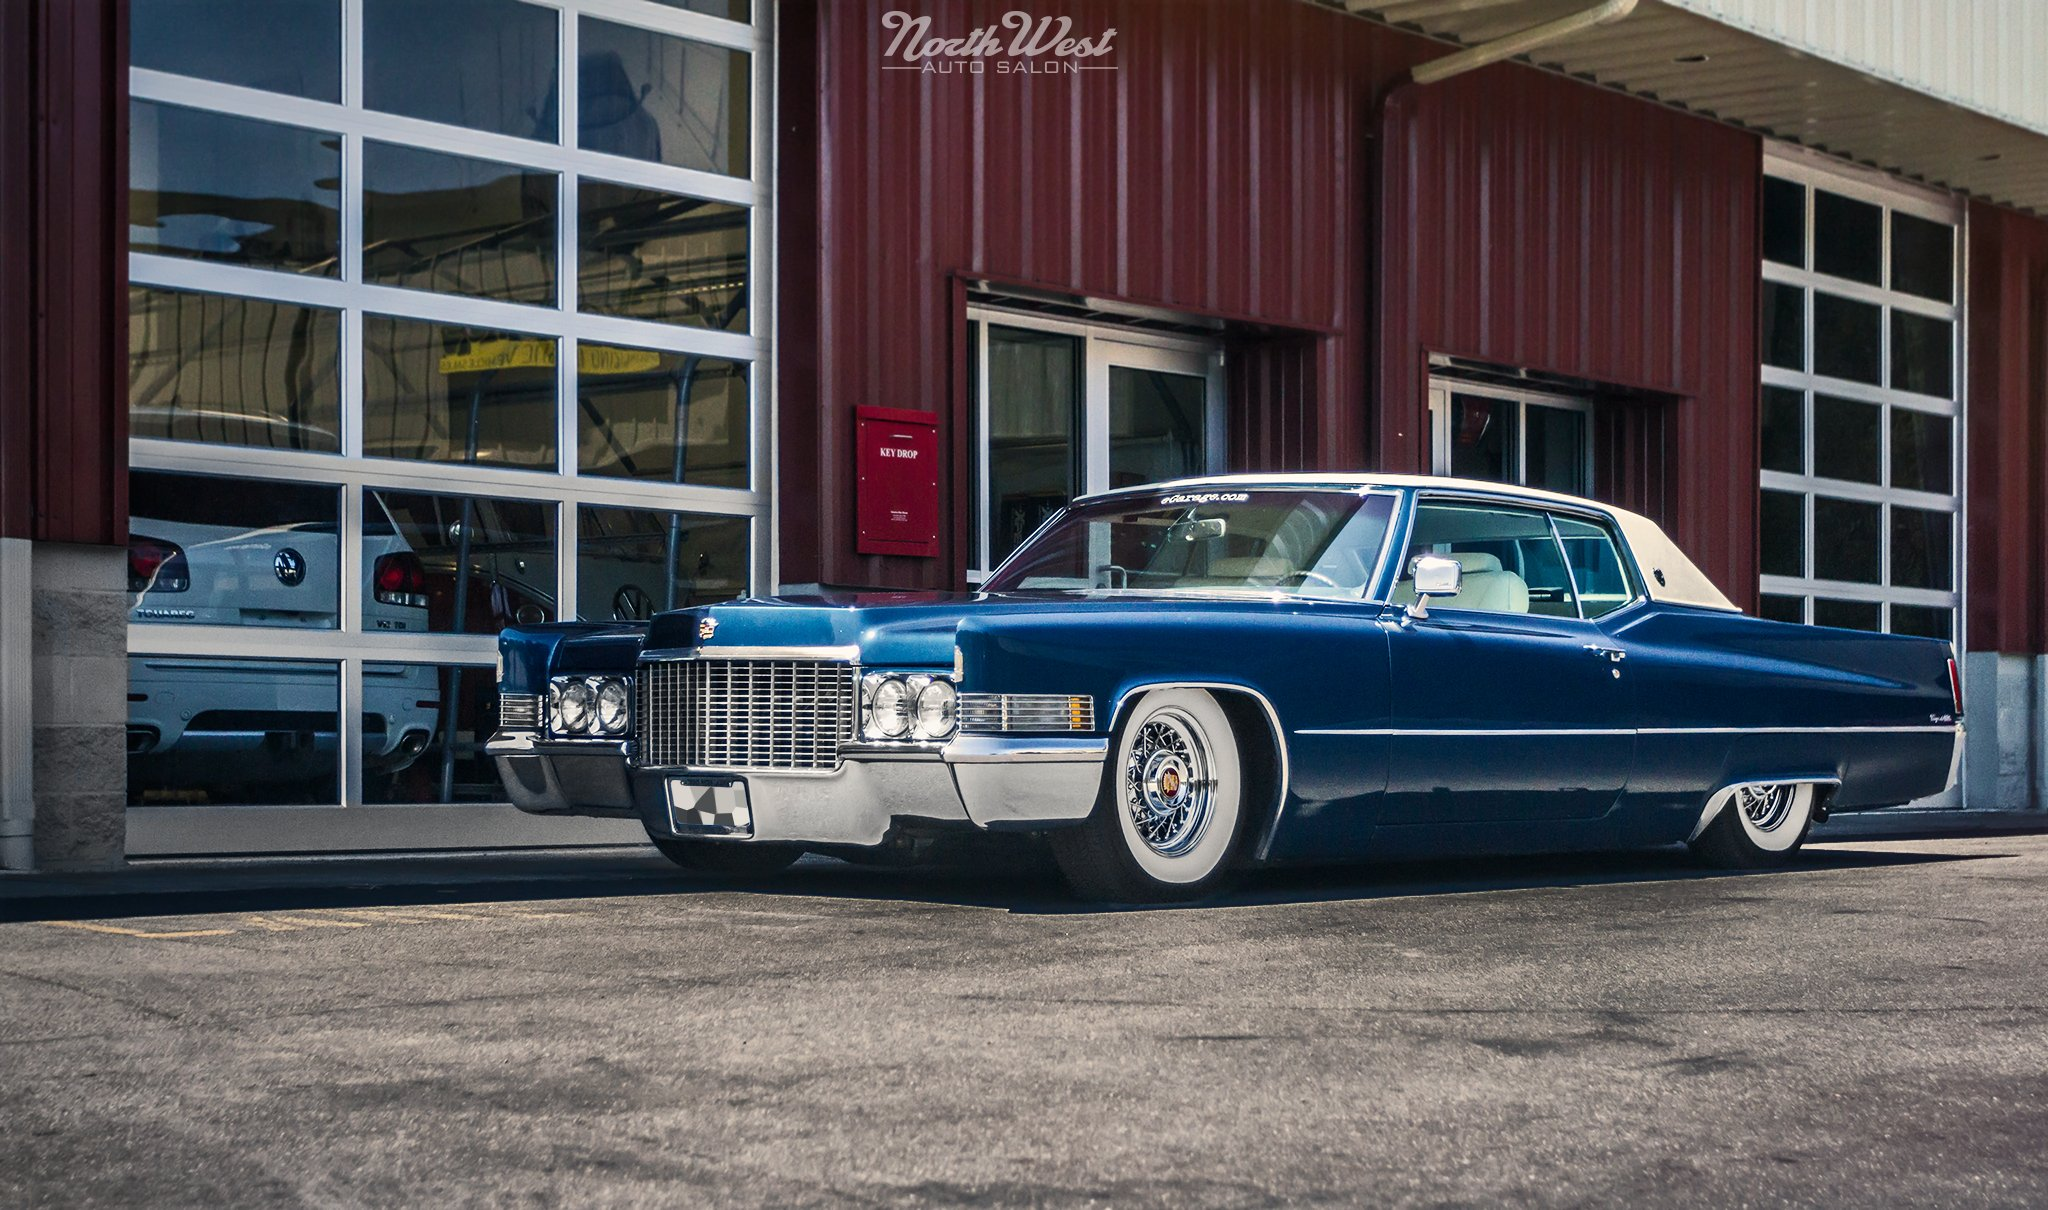 Prd887 as well 1967 LINCOLN CONTINENTAL CONVERTIBLE 151727 as well 1967 Cadillac also Daily Monkey 1970 Lincoln Continental likewise 1308 1964 Lincoln Continental. on 67 lincoln continental